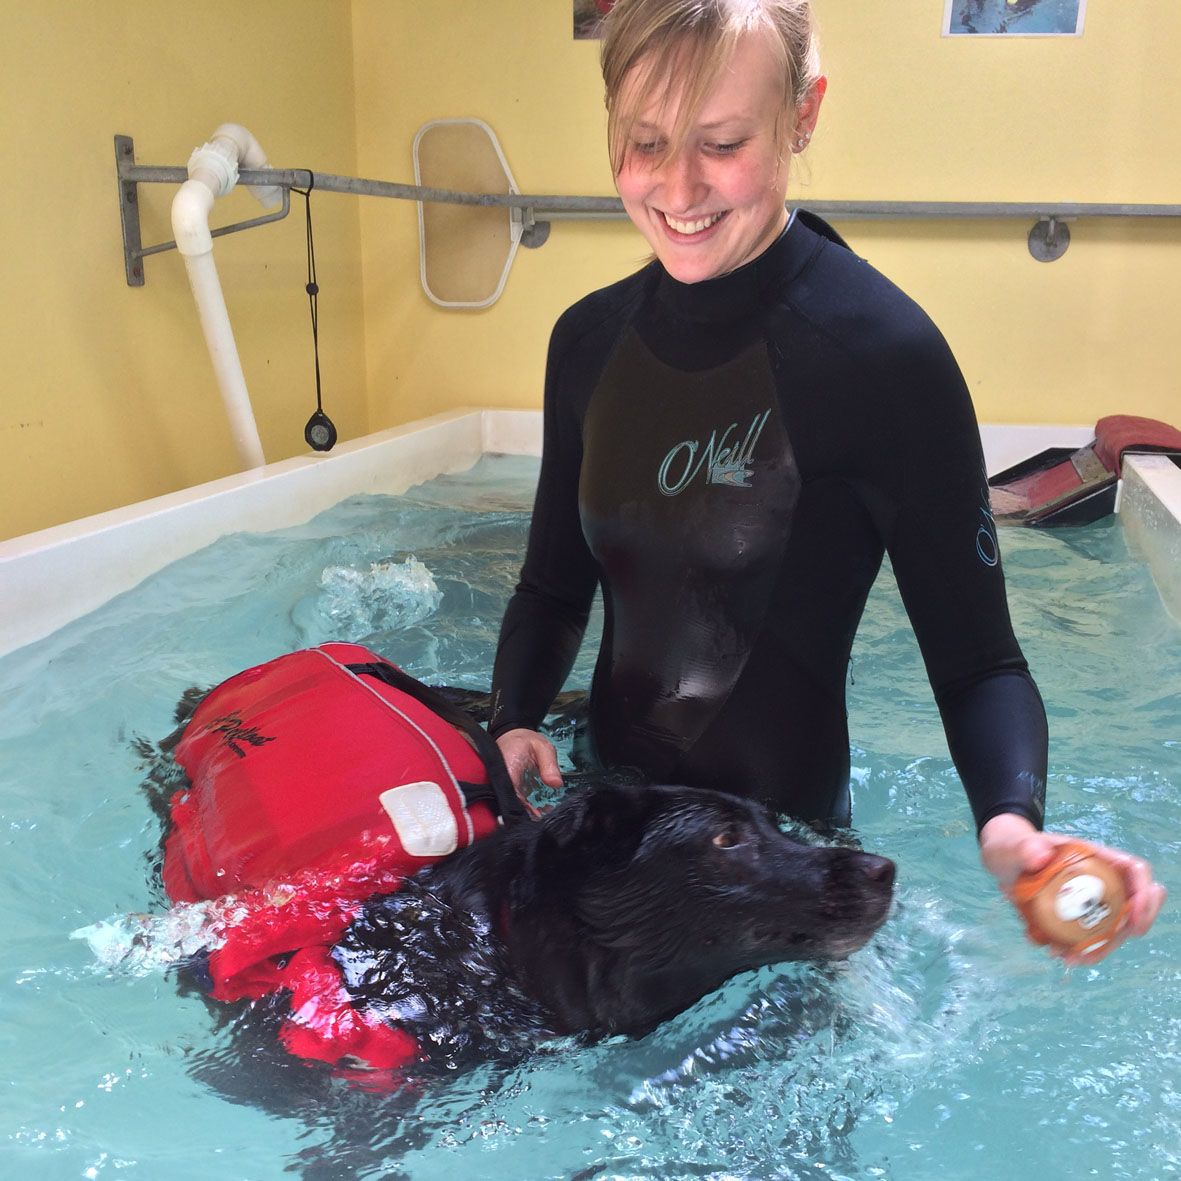 Hydrotherapy can be fun for both the qualified handler and